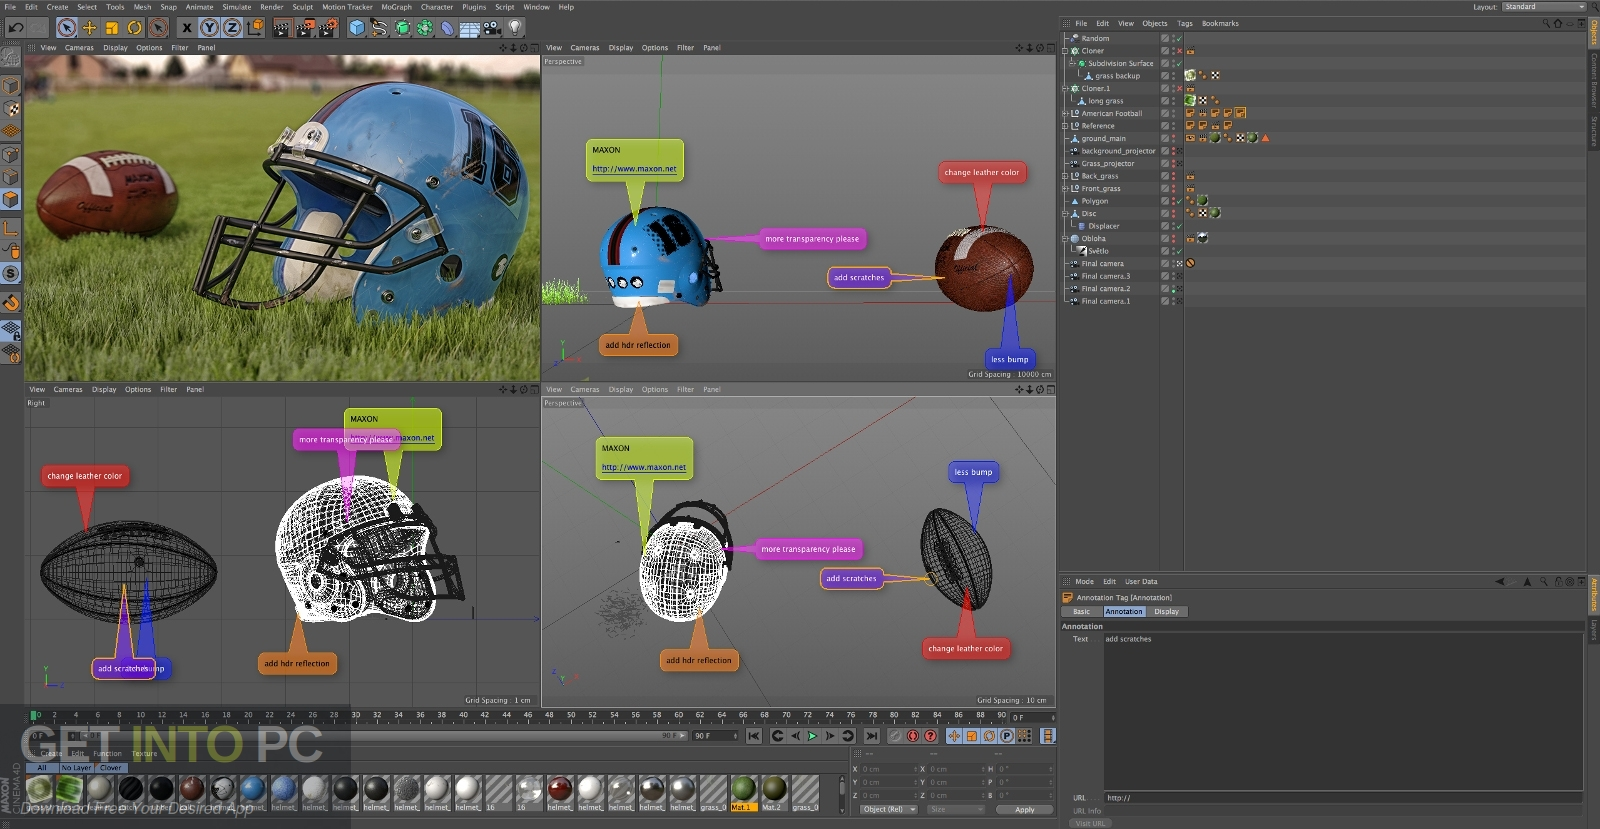 cinema 4d free download full version windows 7